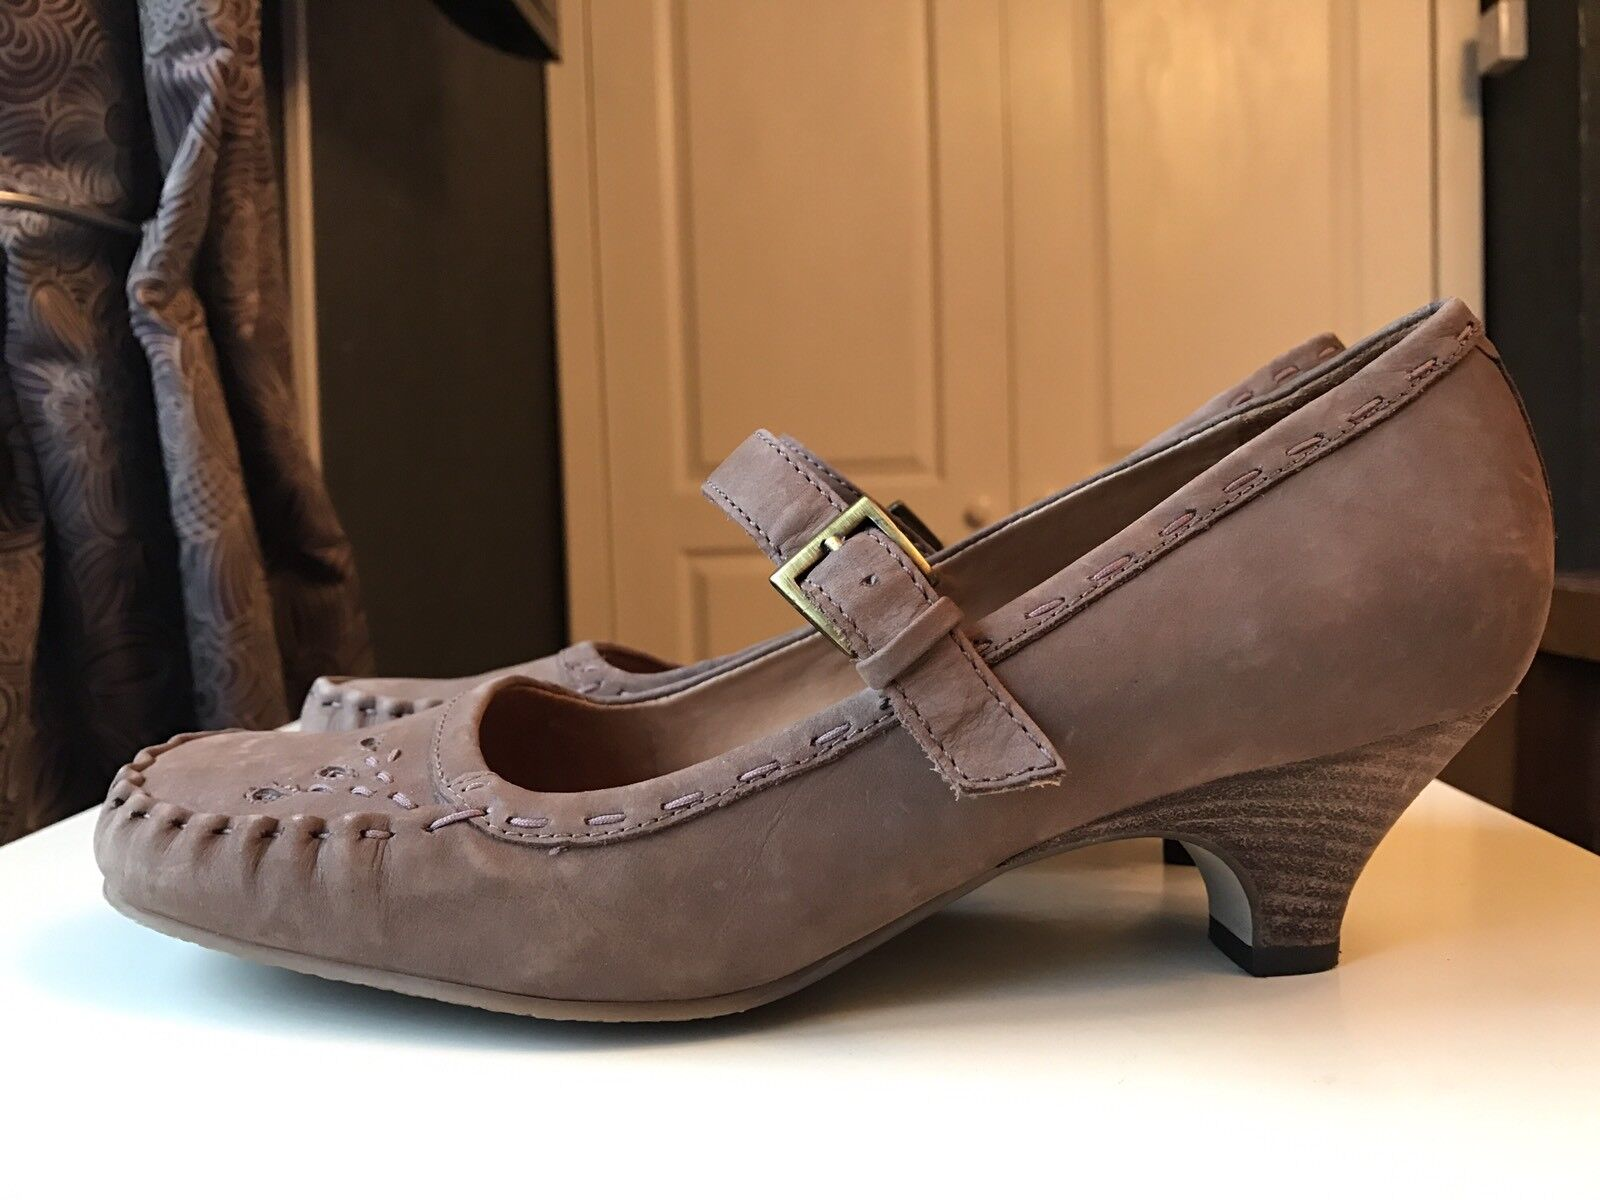 Clarks Leather Women Ladies Shoe Ankle Boot Heel Court Sandal Brogue Size 6 39